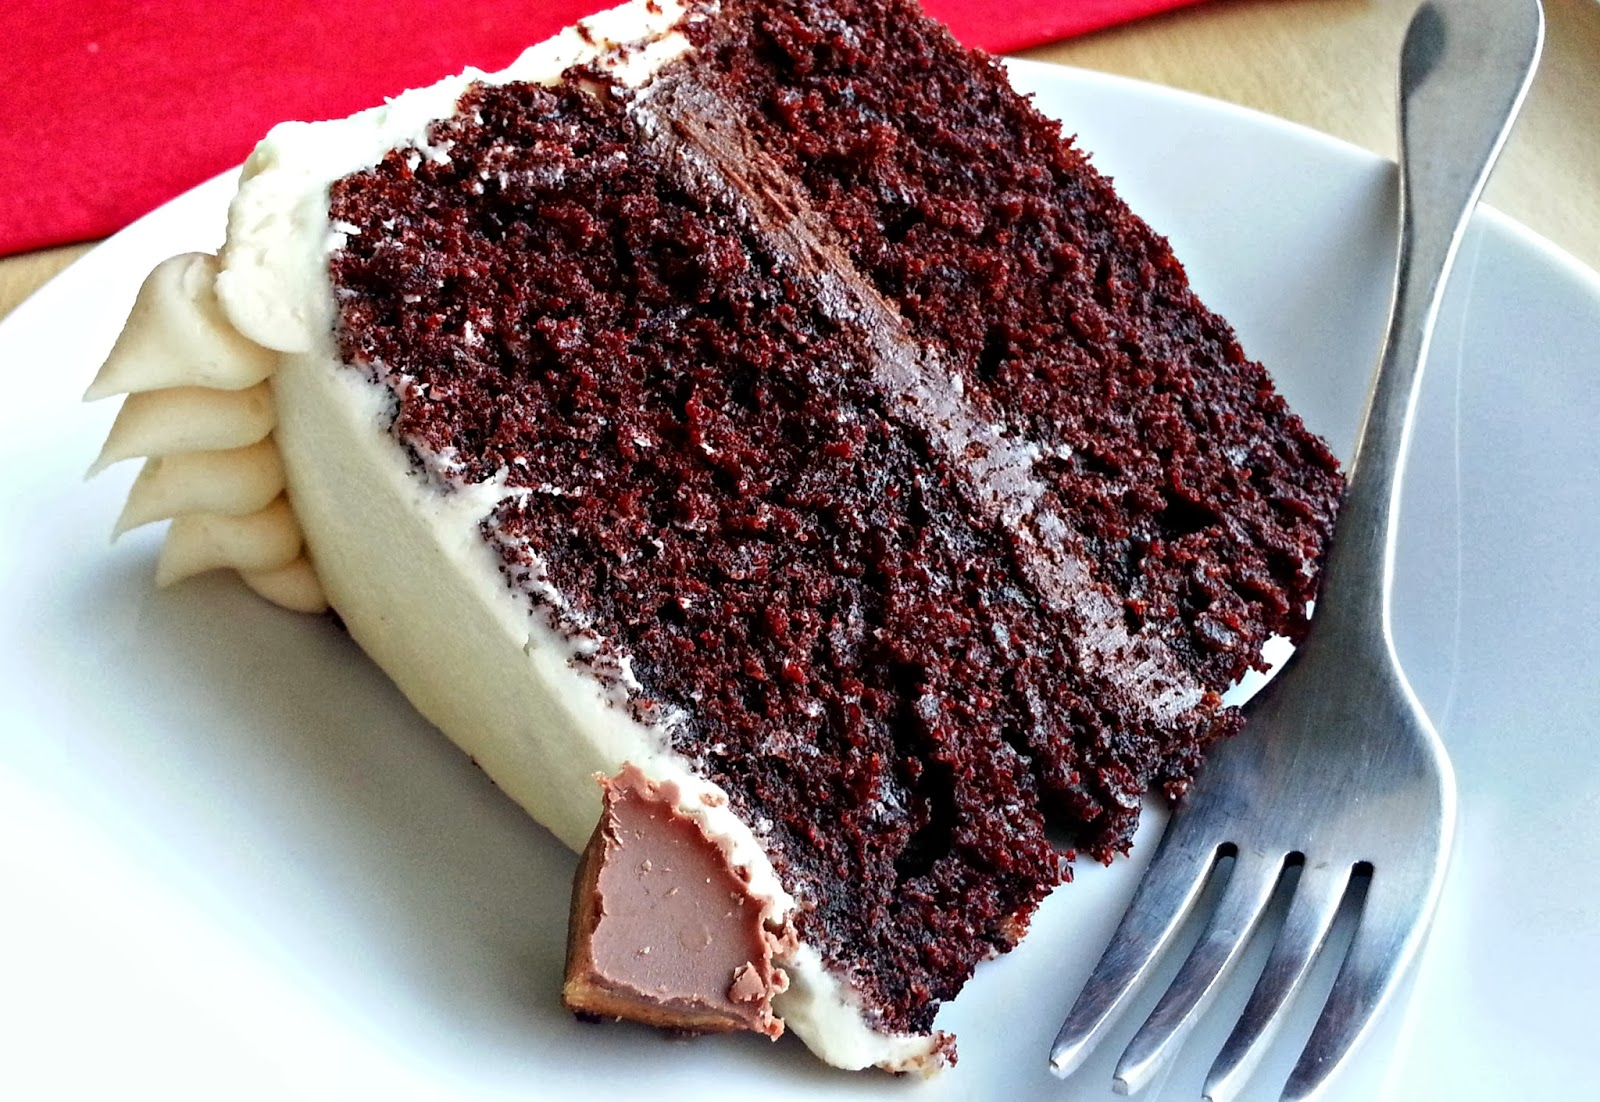 Chocolate cake with peanut butter ganache and marshmallow frosting